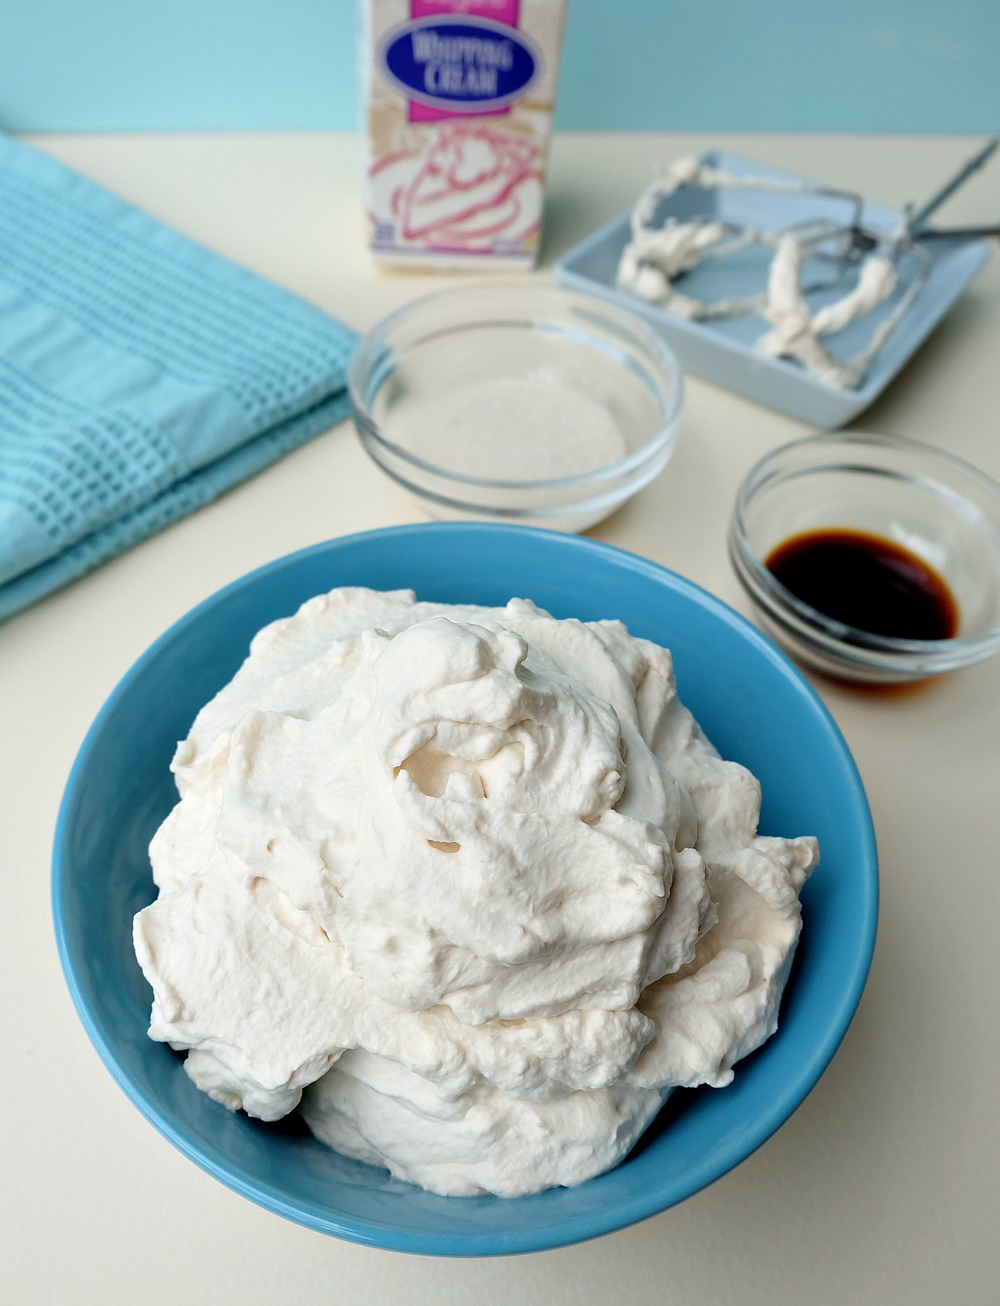 Toss the canned whipped cream! Making whipped cream from scratch is simple with Hello Creative Family's Easy Back To Basics How To Make Whipped Cream Recipe. All you need is whipping cream, sugar and vanilla! Control exactly how much sugar goes in and experiment with different flavor options like Pina Colada, Mocha Latte and Lemon Meringue whipped cream!